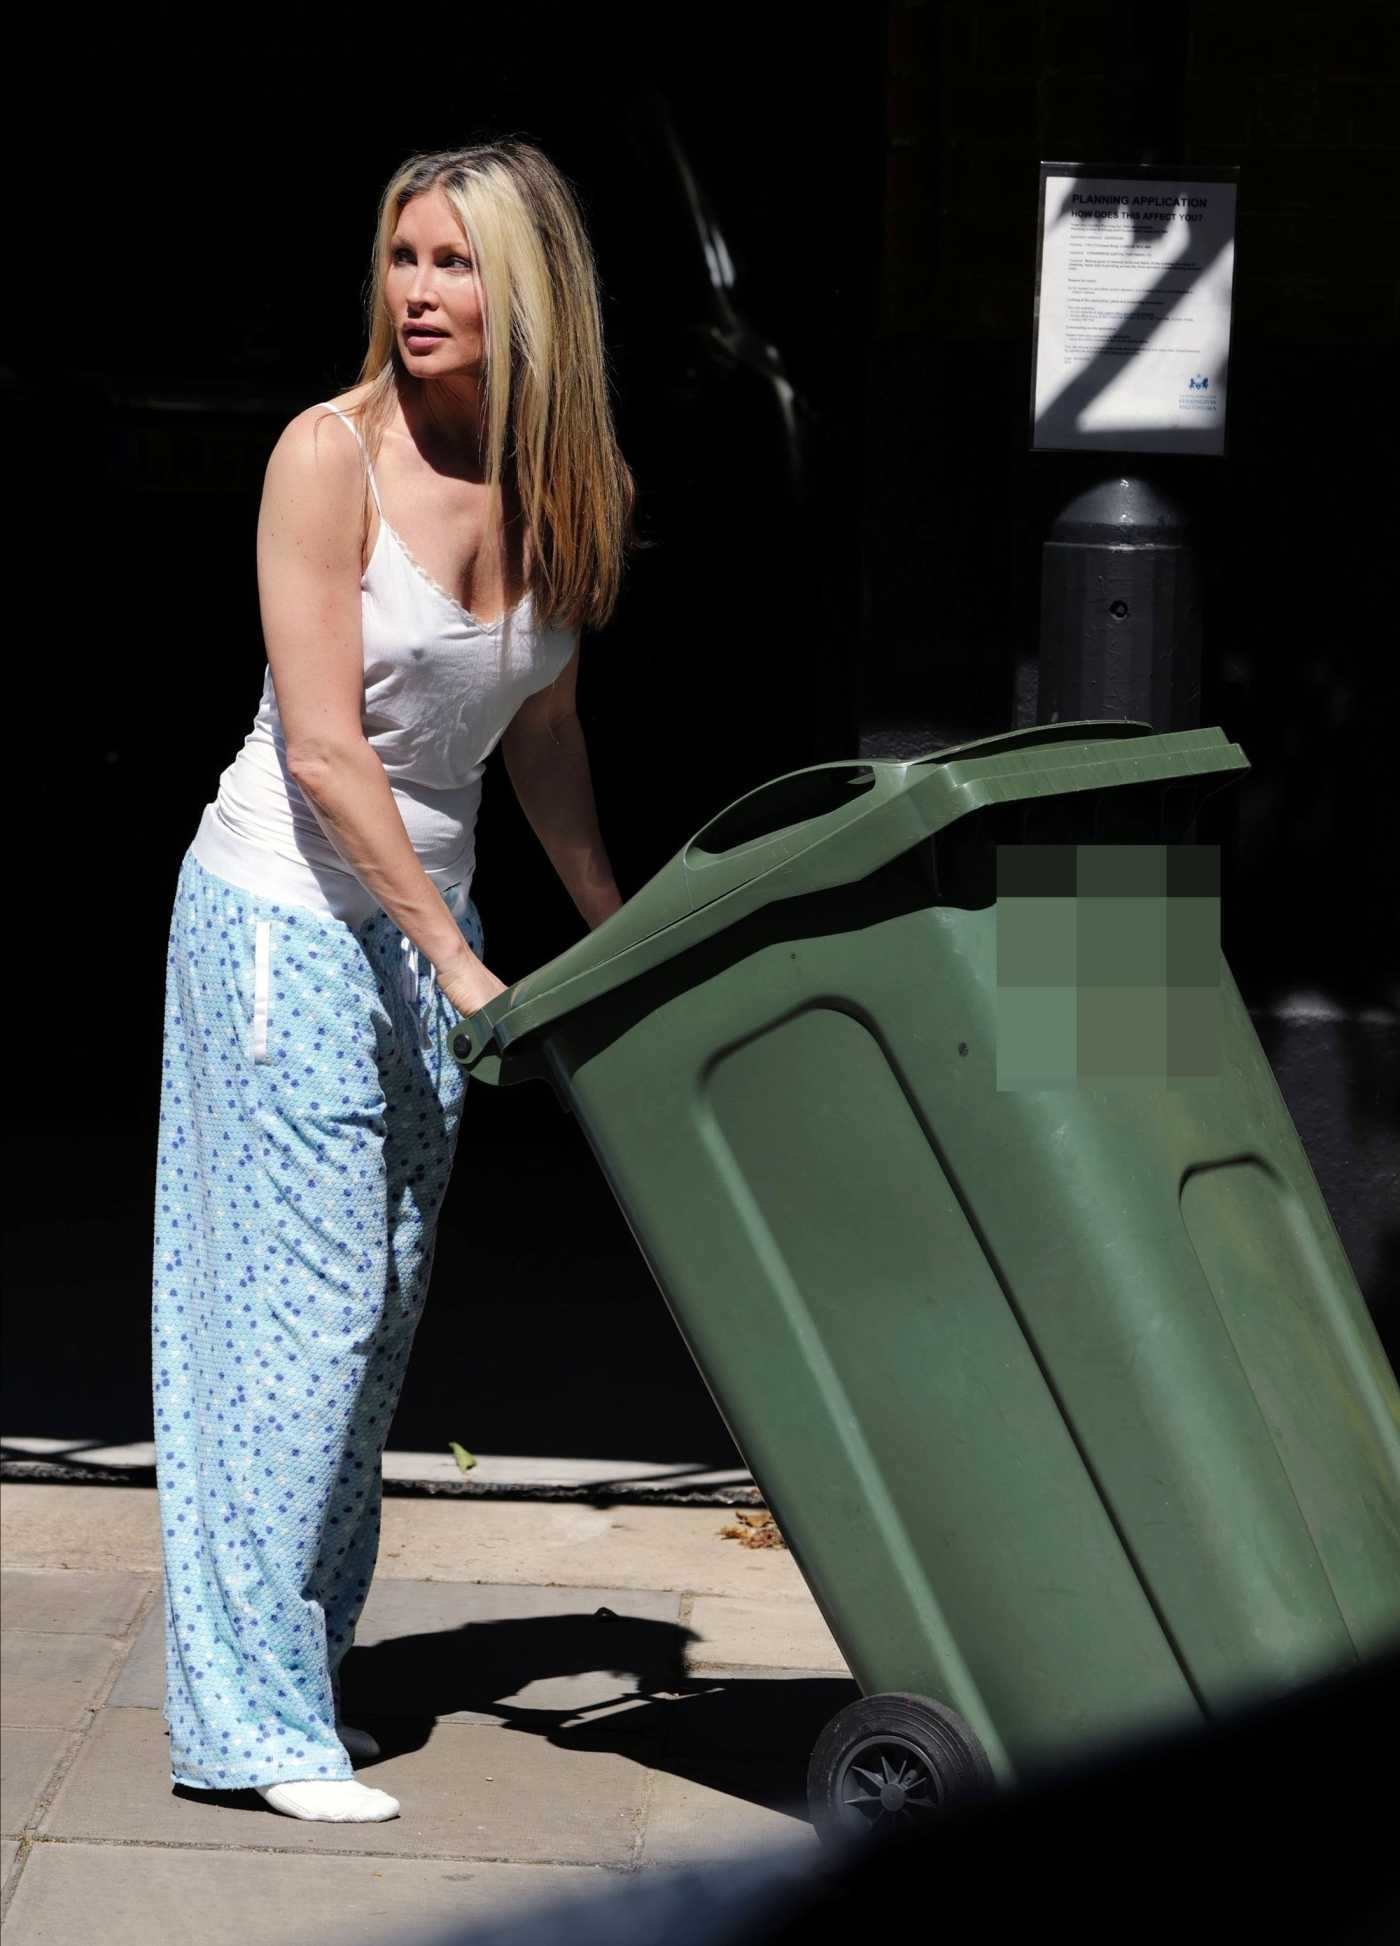 Caprice Bourret in a Light Blue Pajama Bottoms Takes the Bins Out in London 05/26/2020